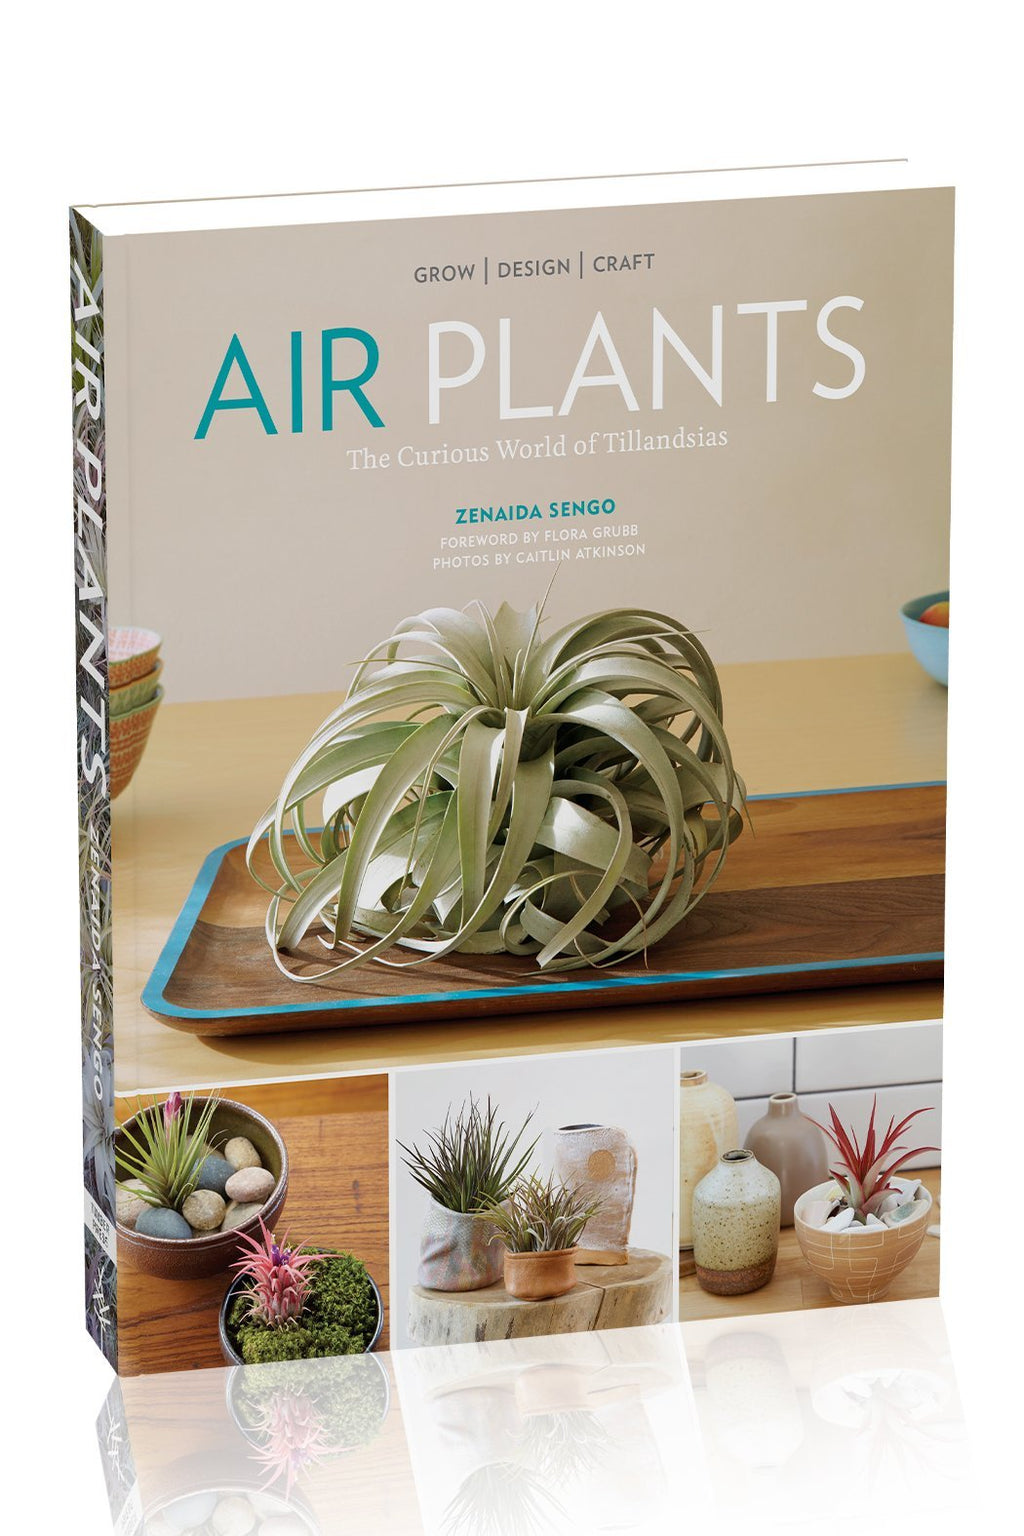 EcoVibe Style - Air Plants The Curious World of Tillandsias By Zenaida Sengo Photographs by Caitlin Atkinson, Book